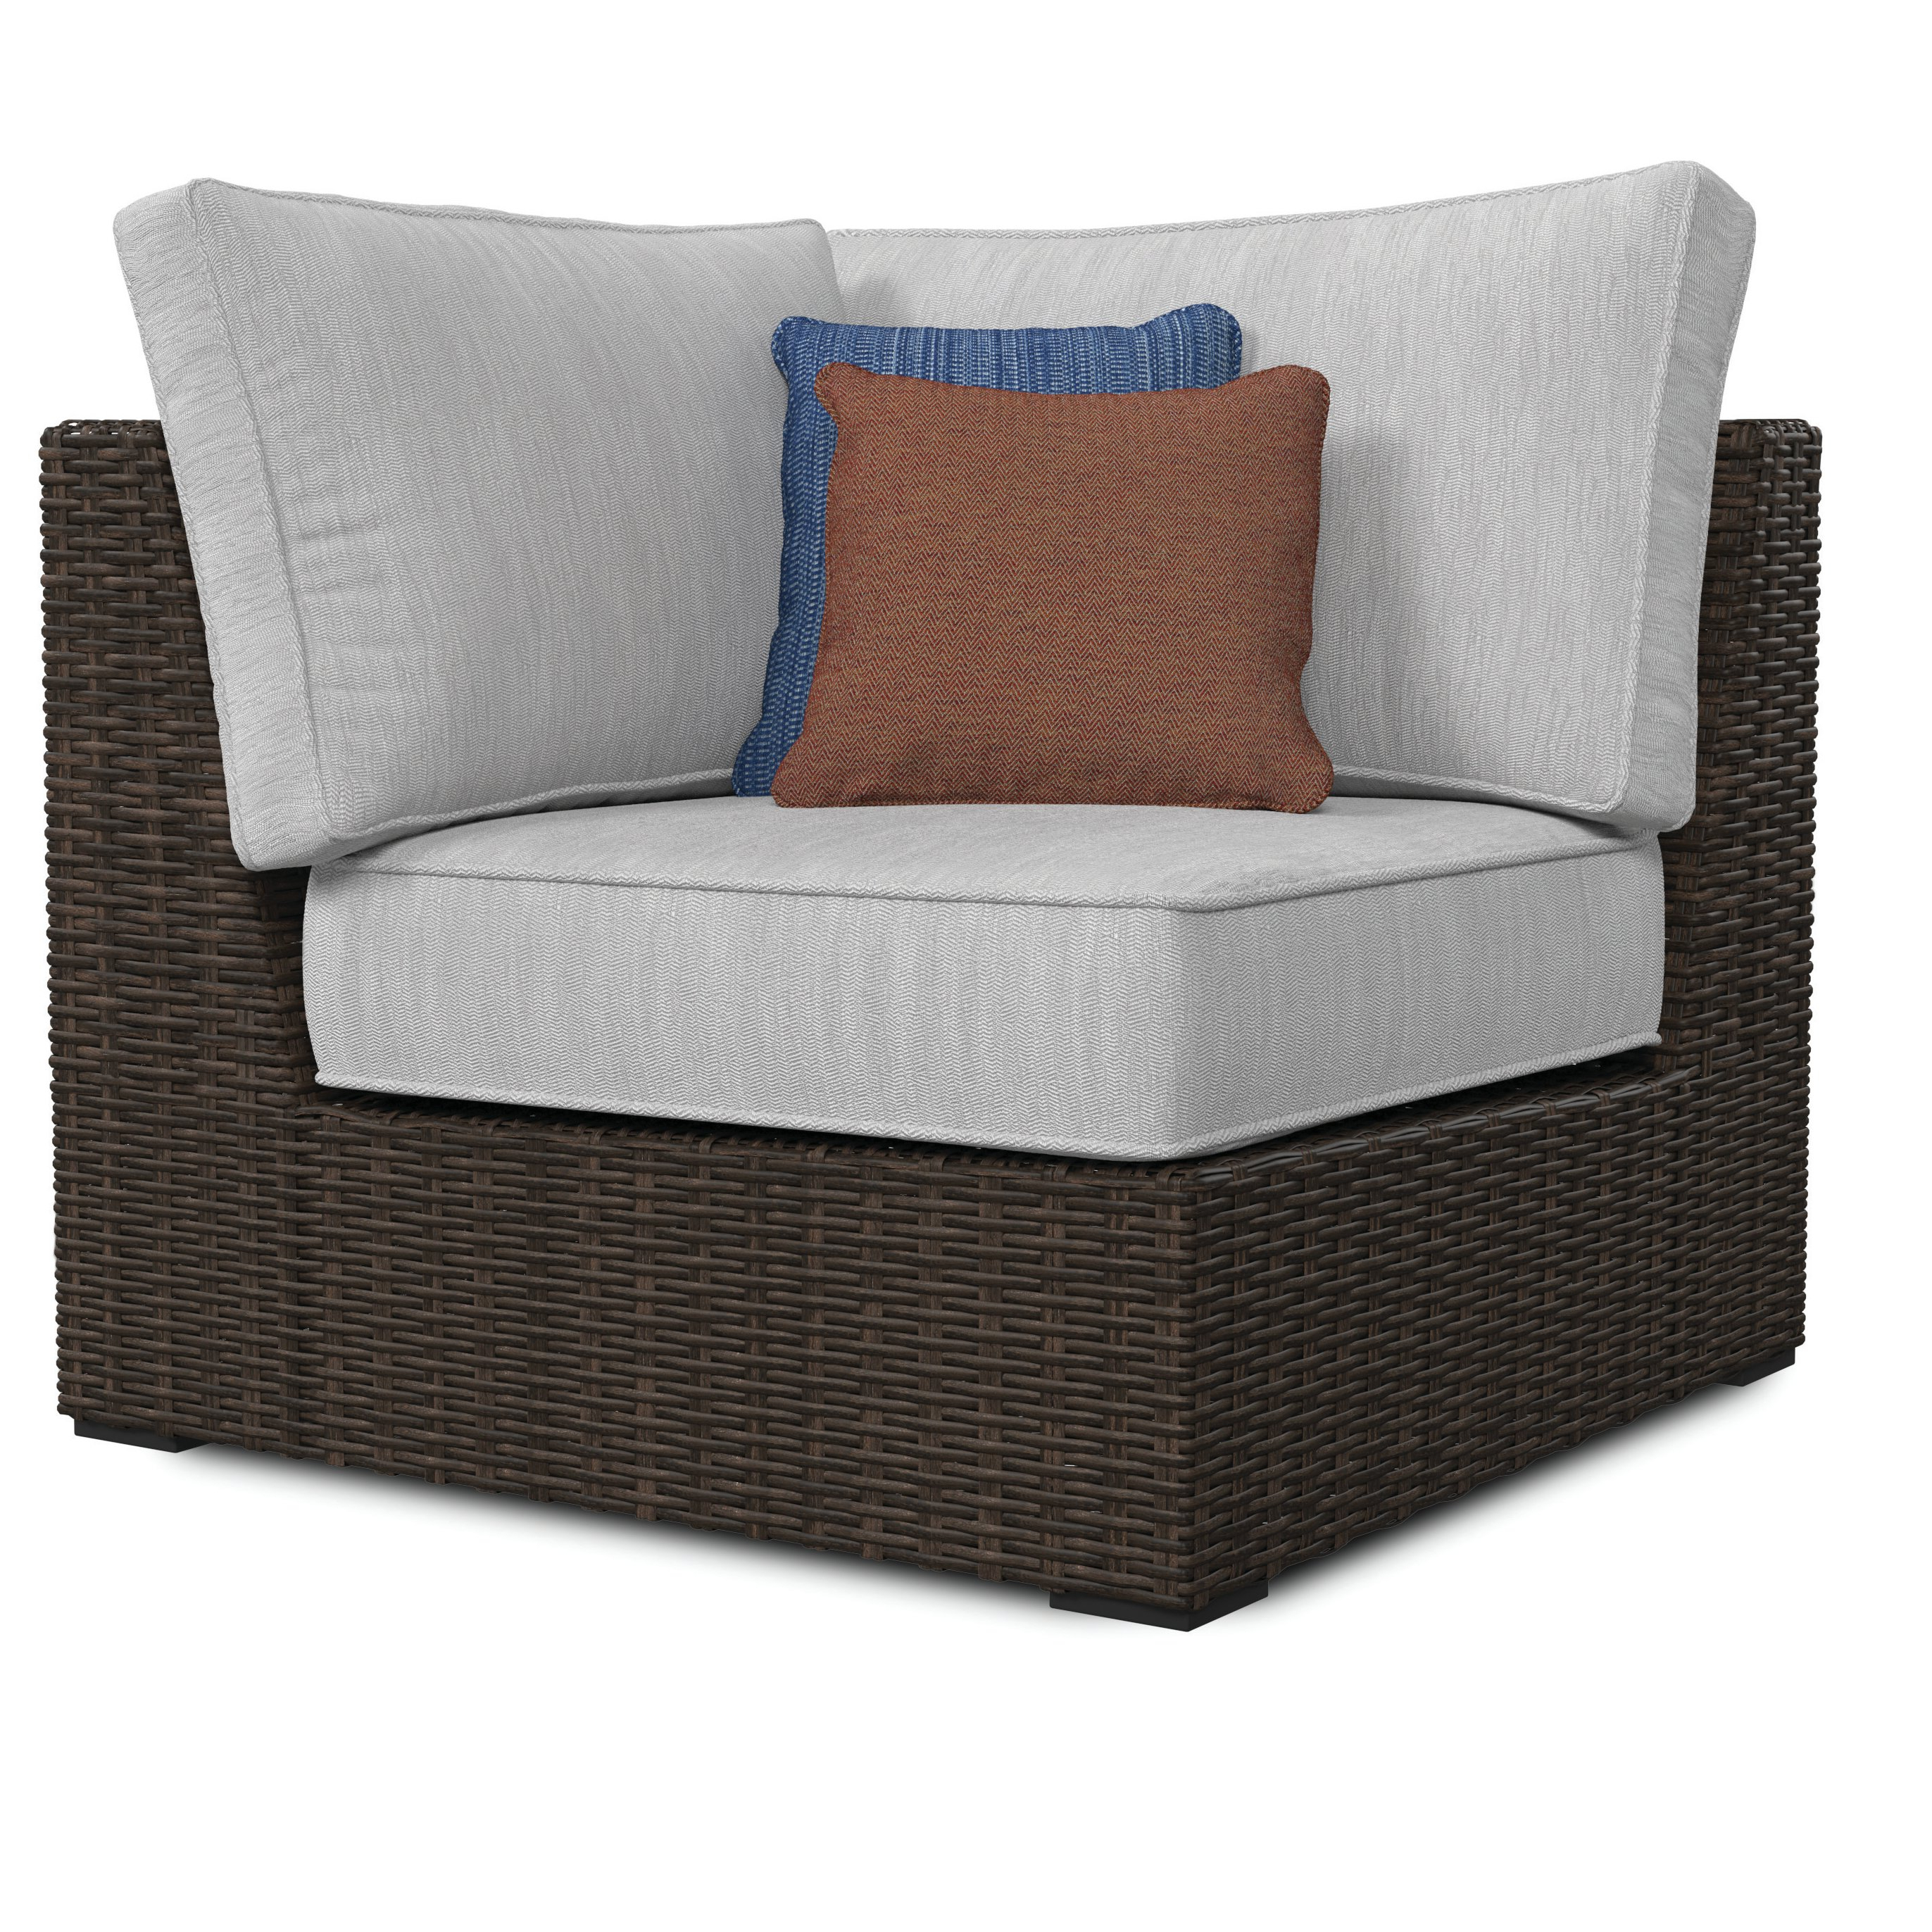 2019 Oreland Patio Sofas With Cushions For Oreland Patio Chair With Cushions (View 4 of 20)